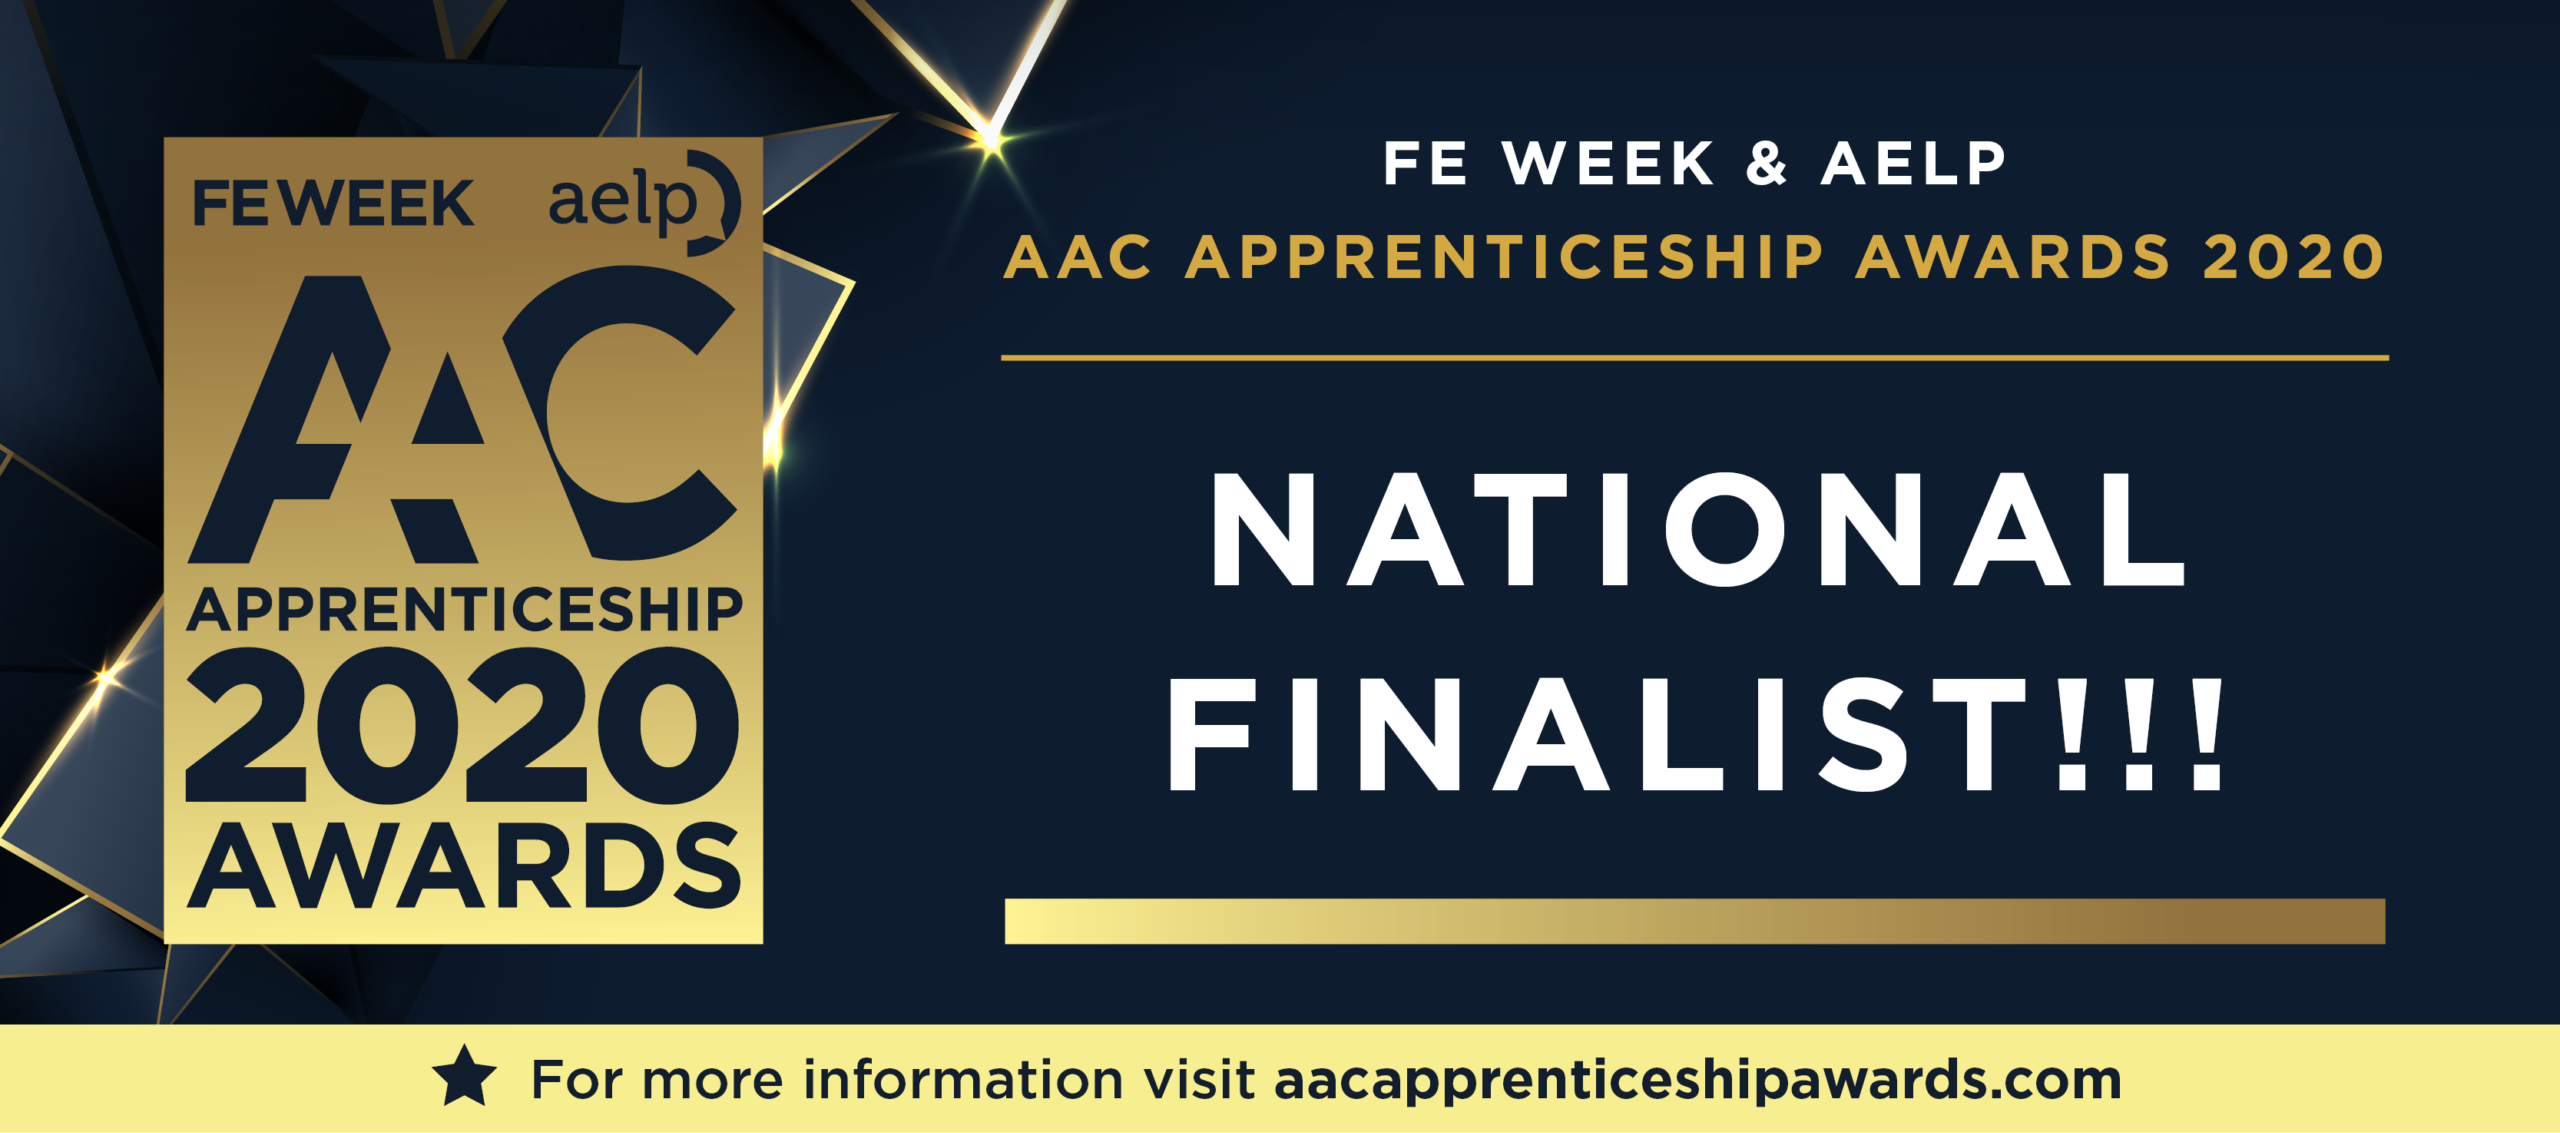 AAC Apprenticeship Awards 2020